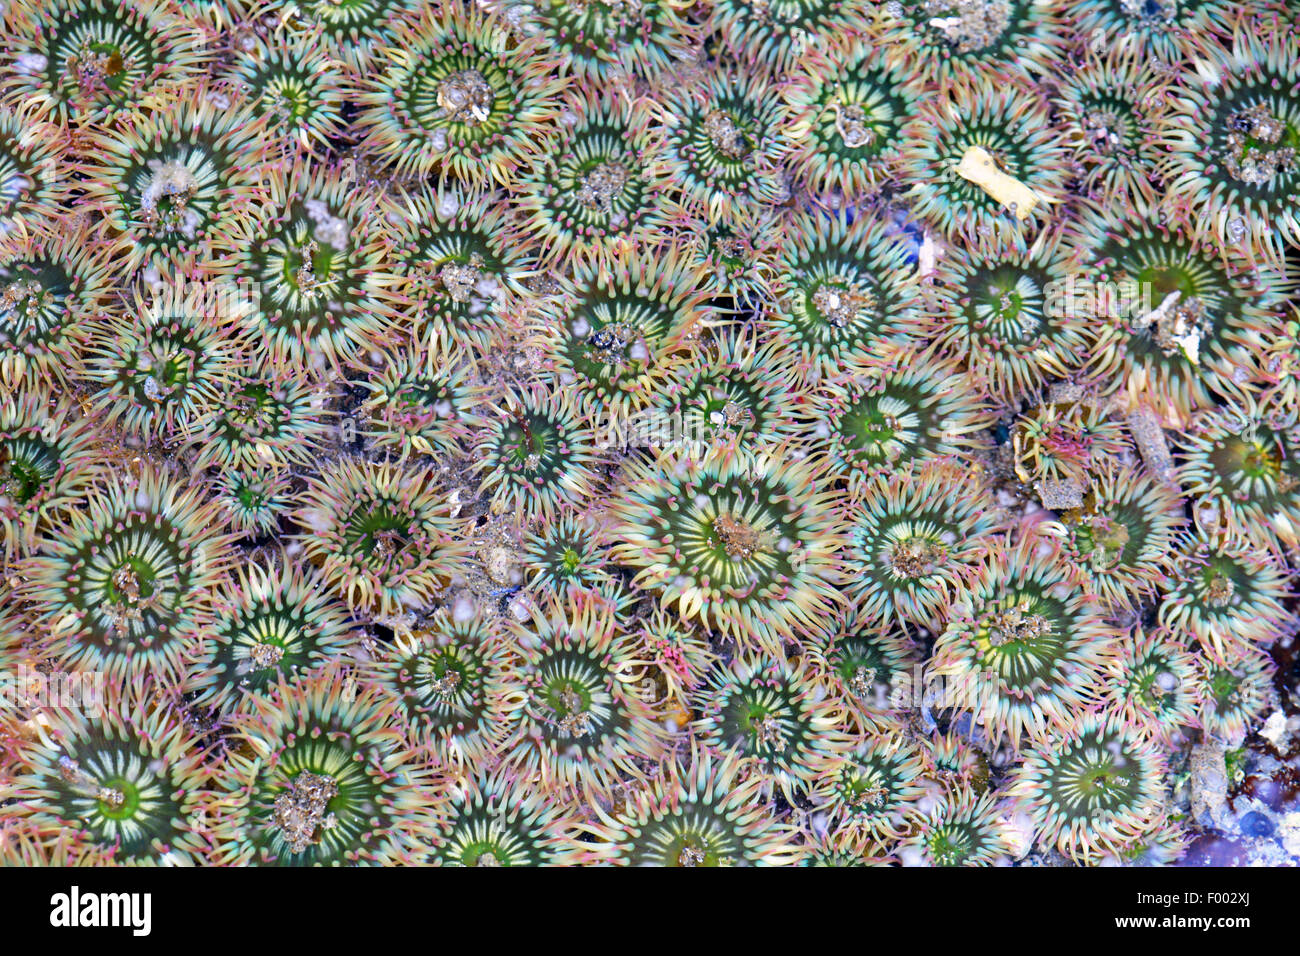 giant green anemone, great green anemone (Anthopleura xanthogrammica), group of anemones in shallow water, Canada, - Stock Image